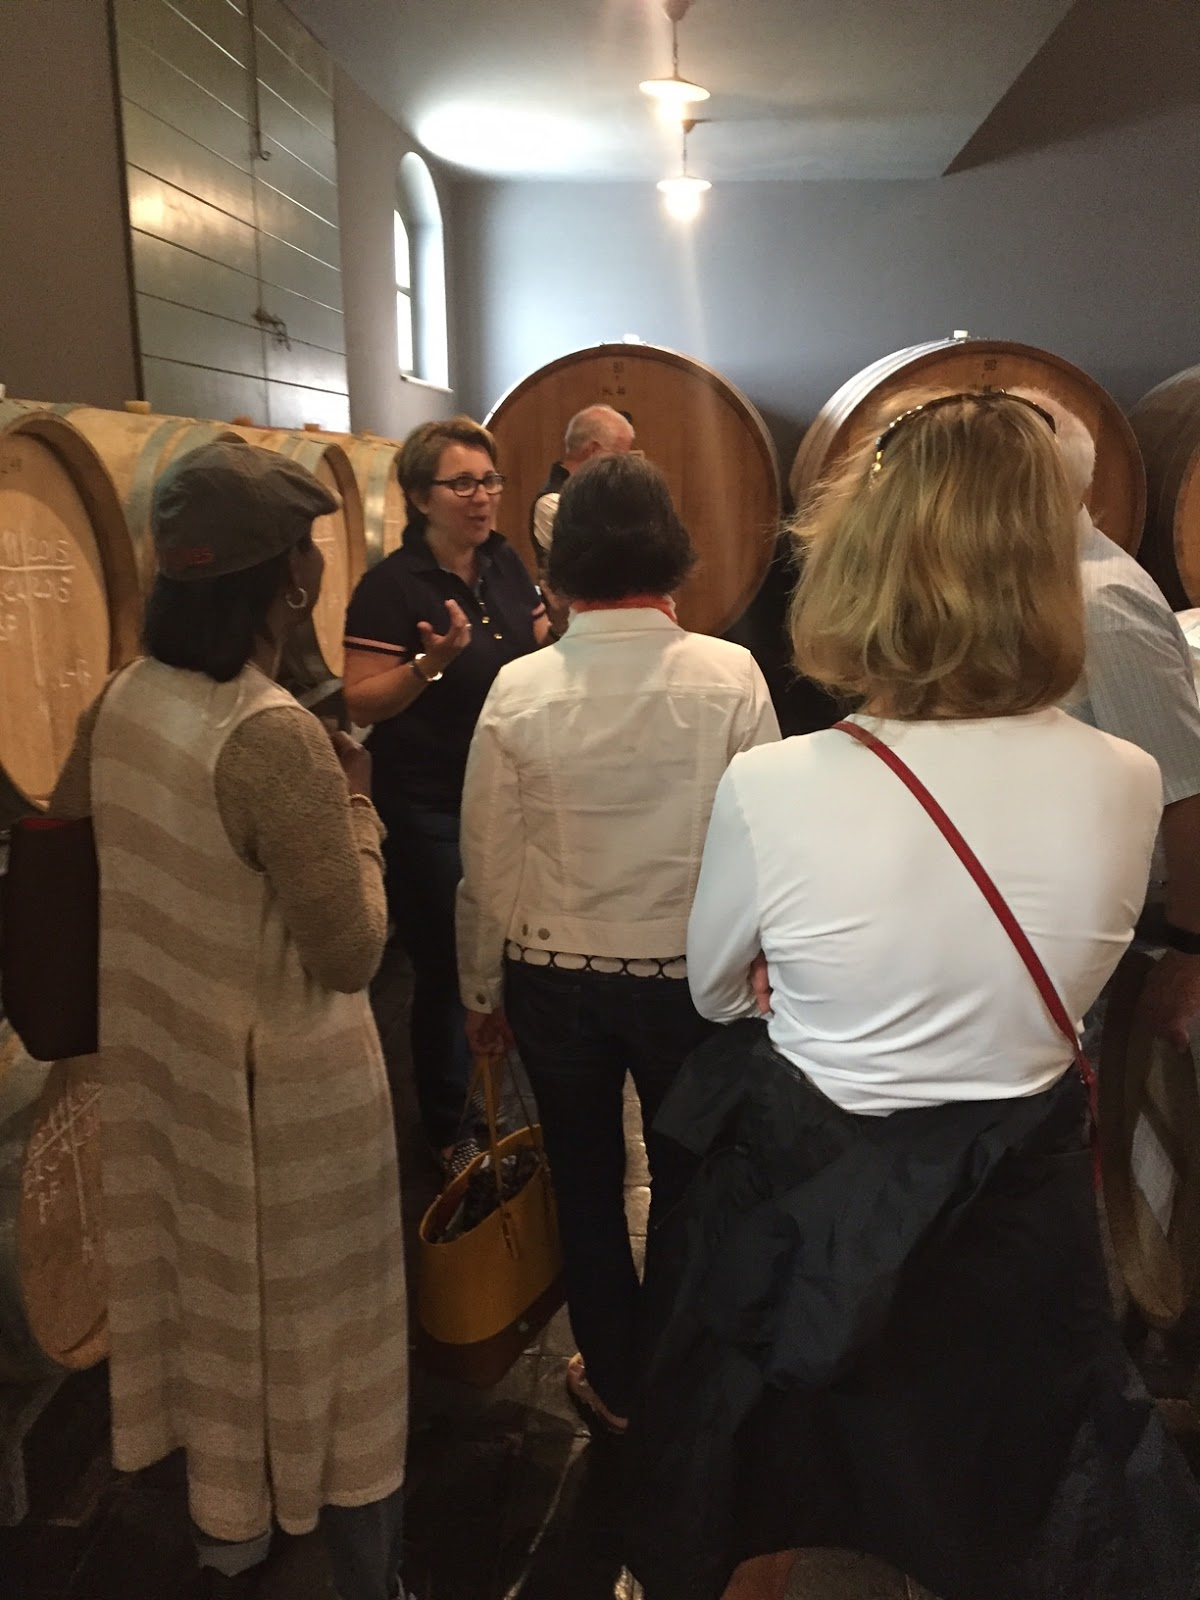 a4fb7831c6da Nebbiolos are vinified in stainless steel tanks with fermentation and  maceration of 35 - 40 days while Barberas complete the process in 25 - 30  days.